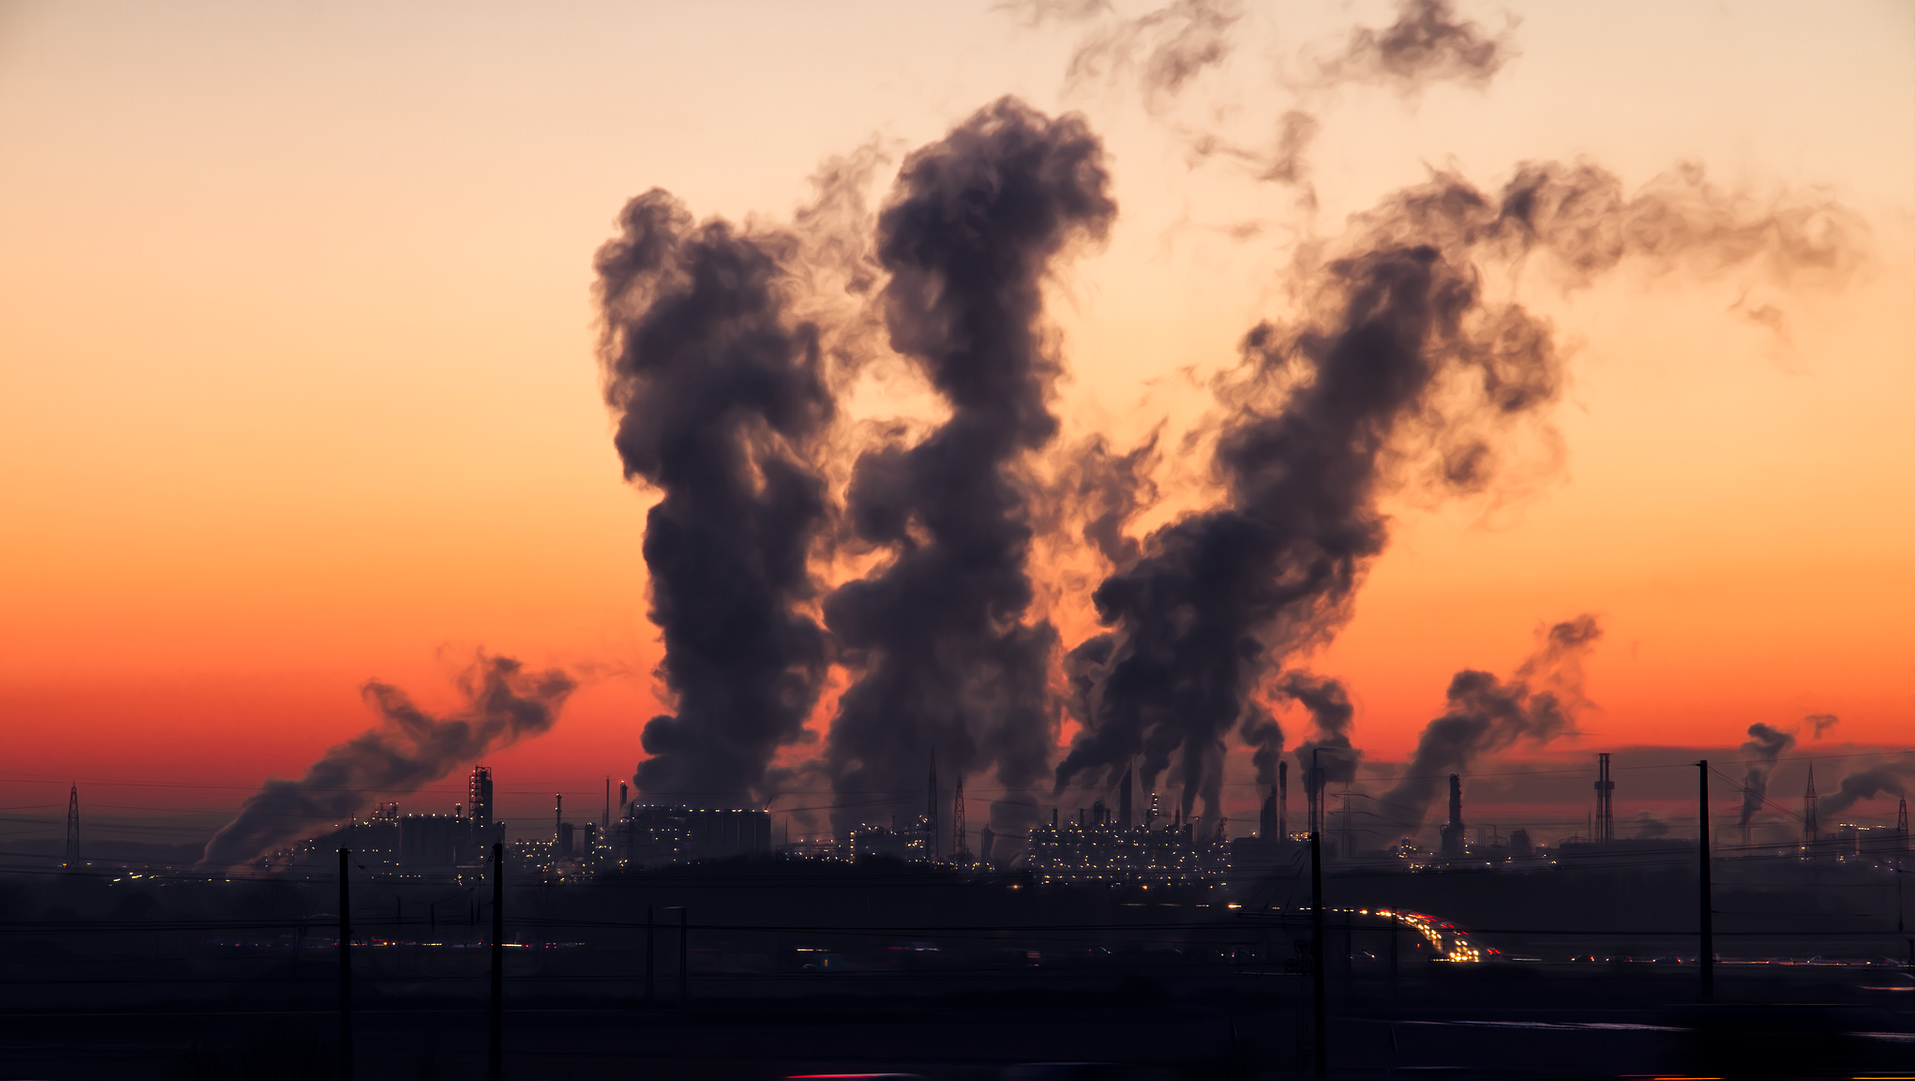 <h4>Make polluters pay</h4><p> The companies that produce PFAS chemicals must be<p><p>held accountable for putting our health and drinking water at risk.